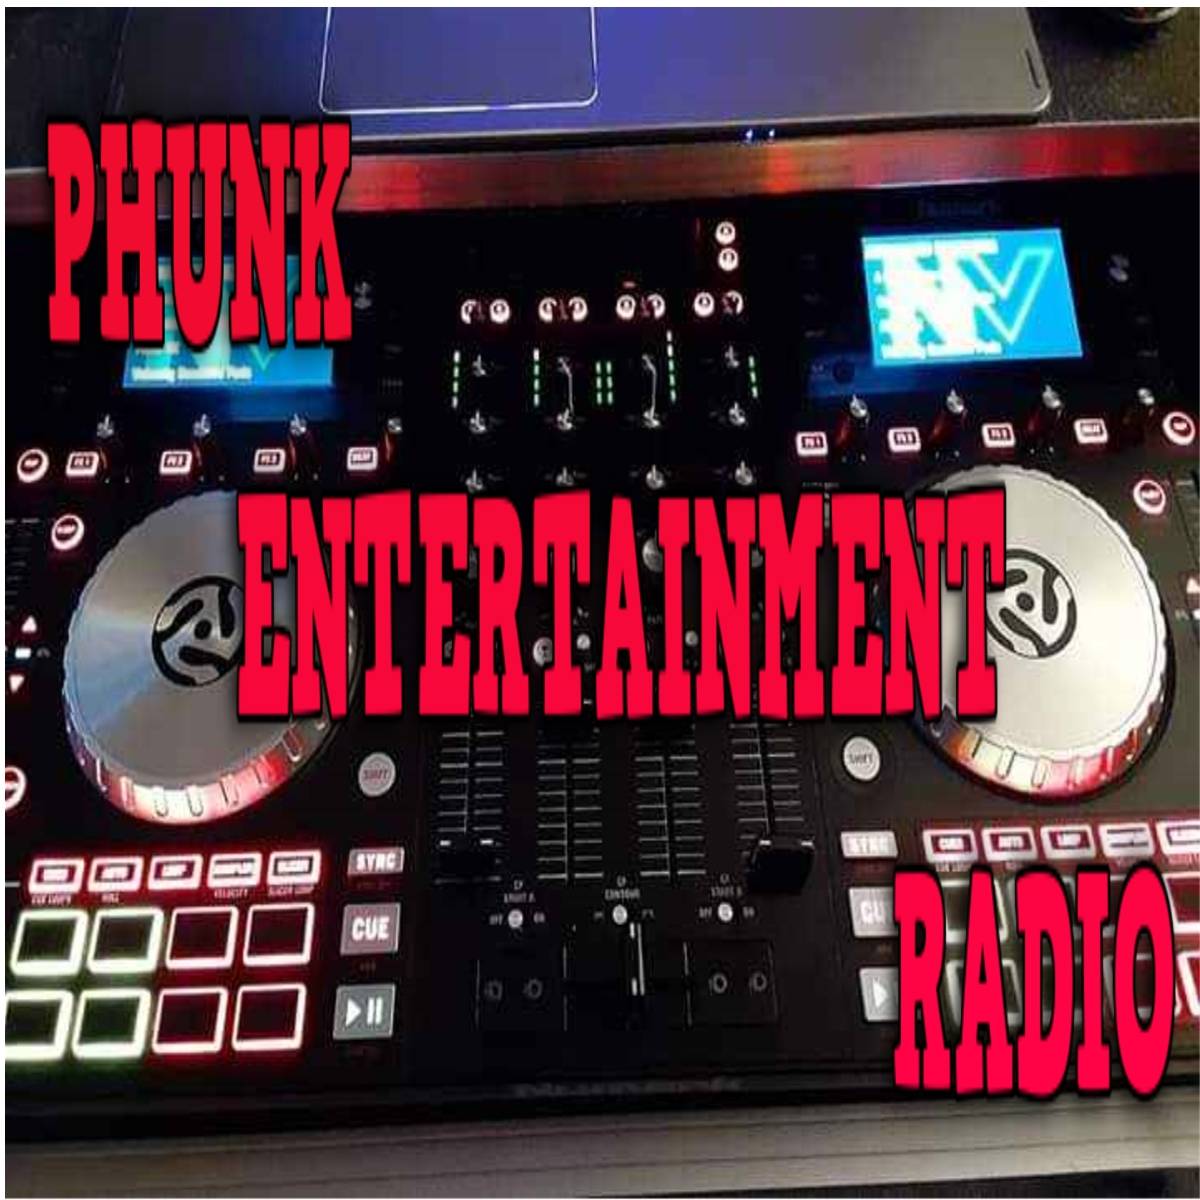 Phunk Entertainment Radio